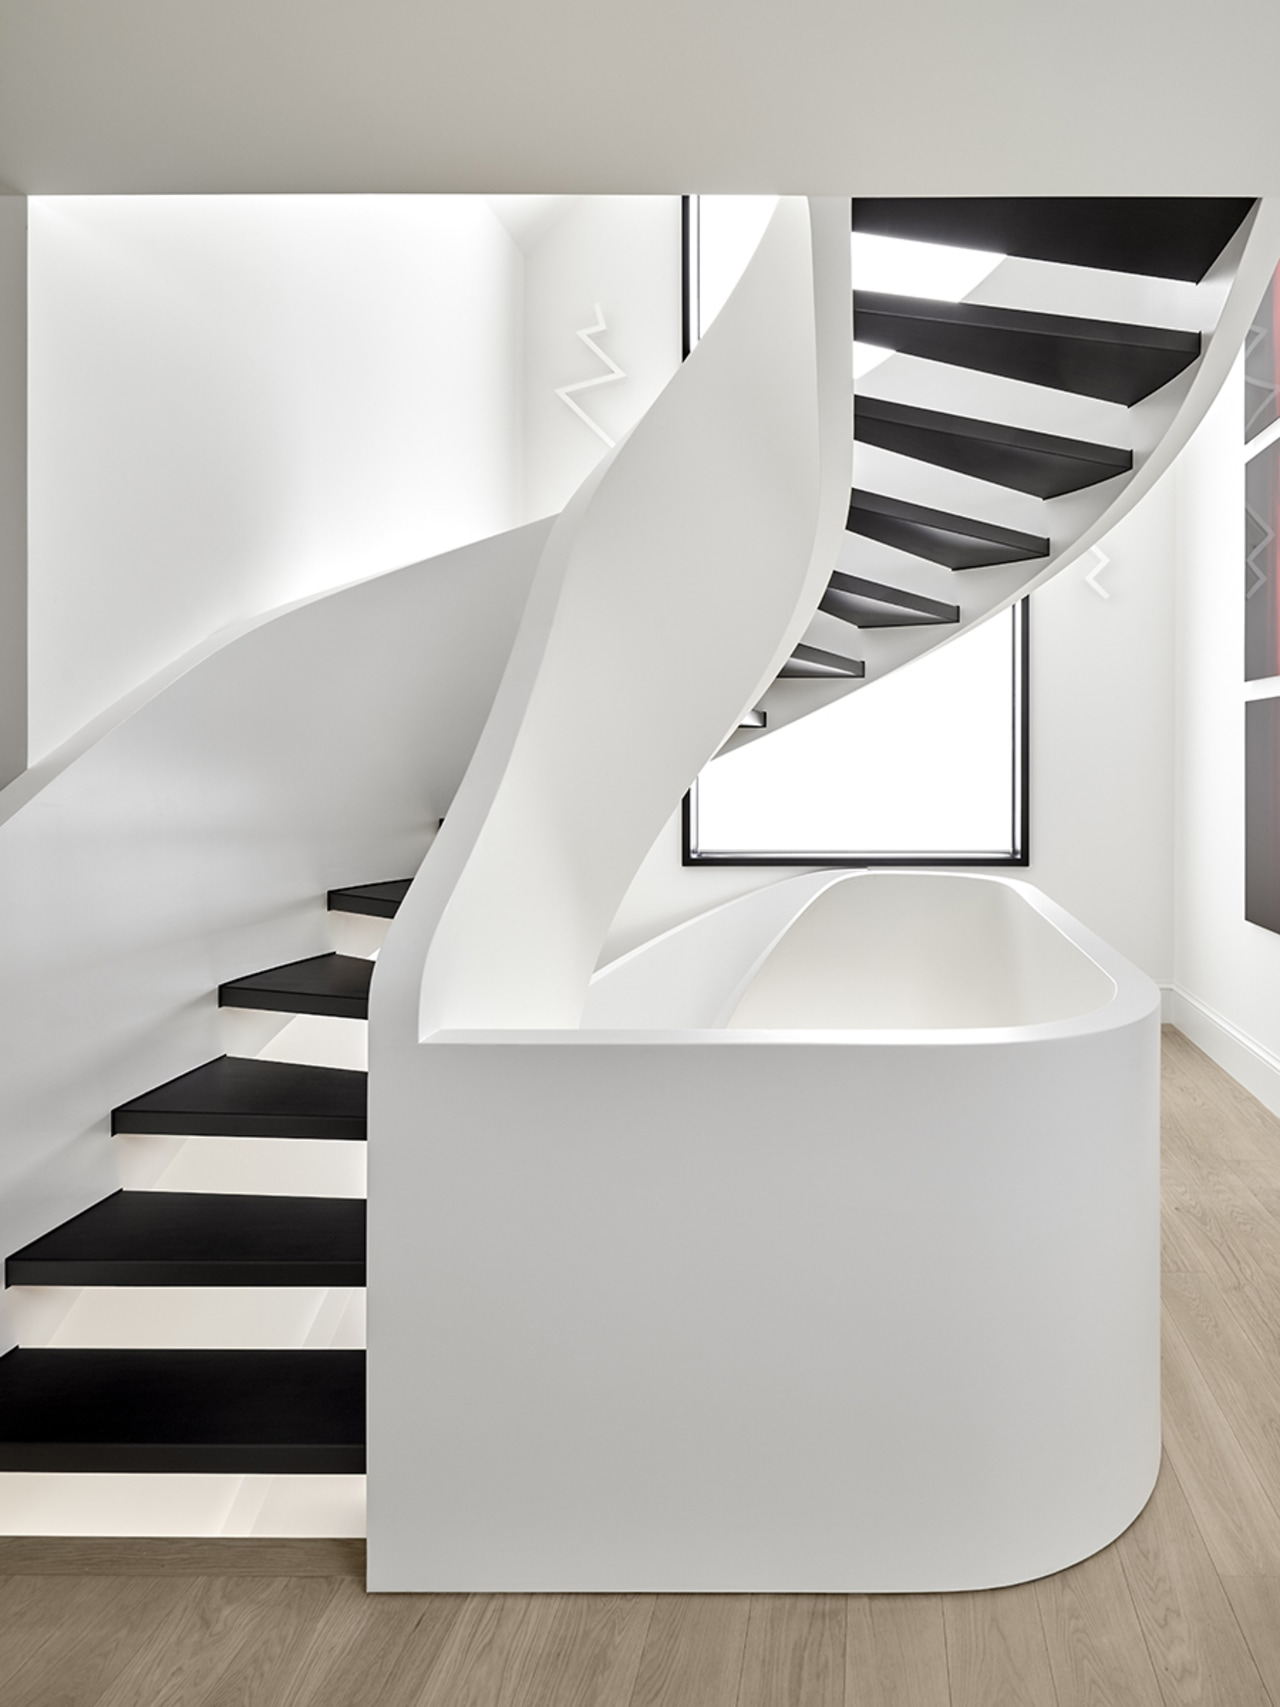 In two sweeping runs, this sculptural staircase knits white